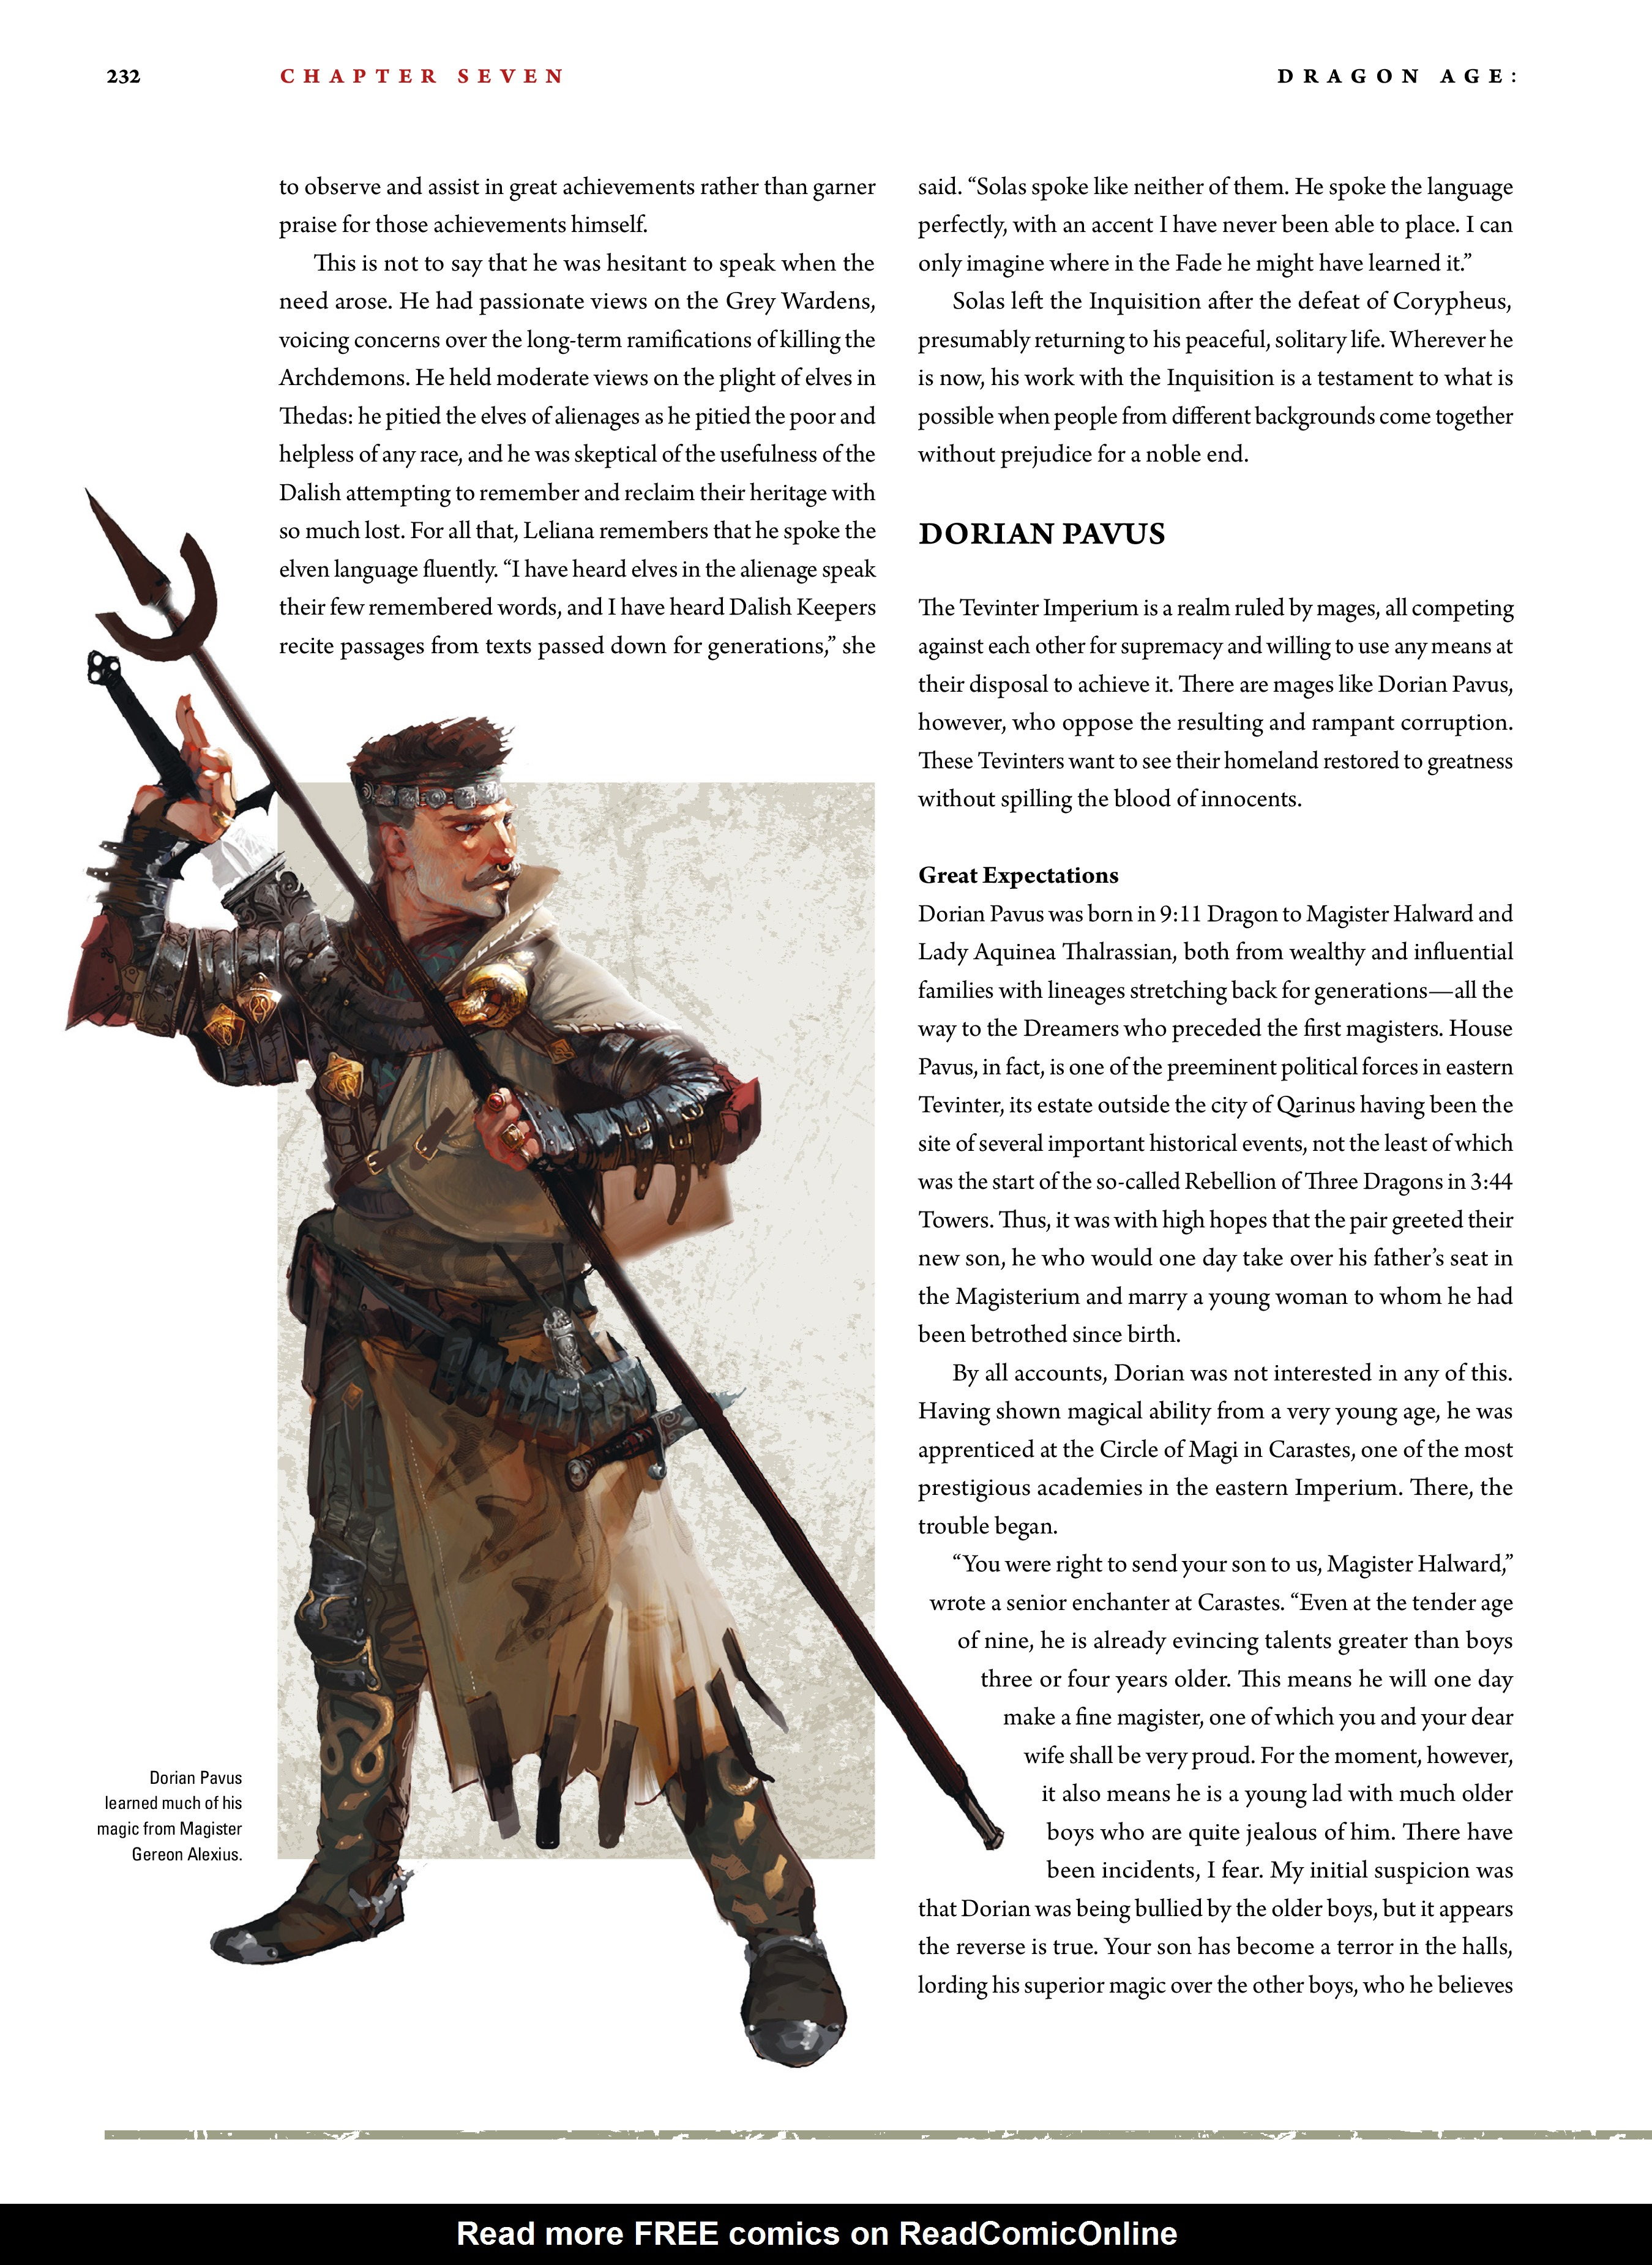 Read online Dragon Age: The World of Thedas comic -  Issue # TPB 2 - 227